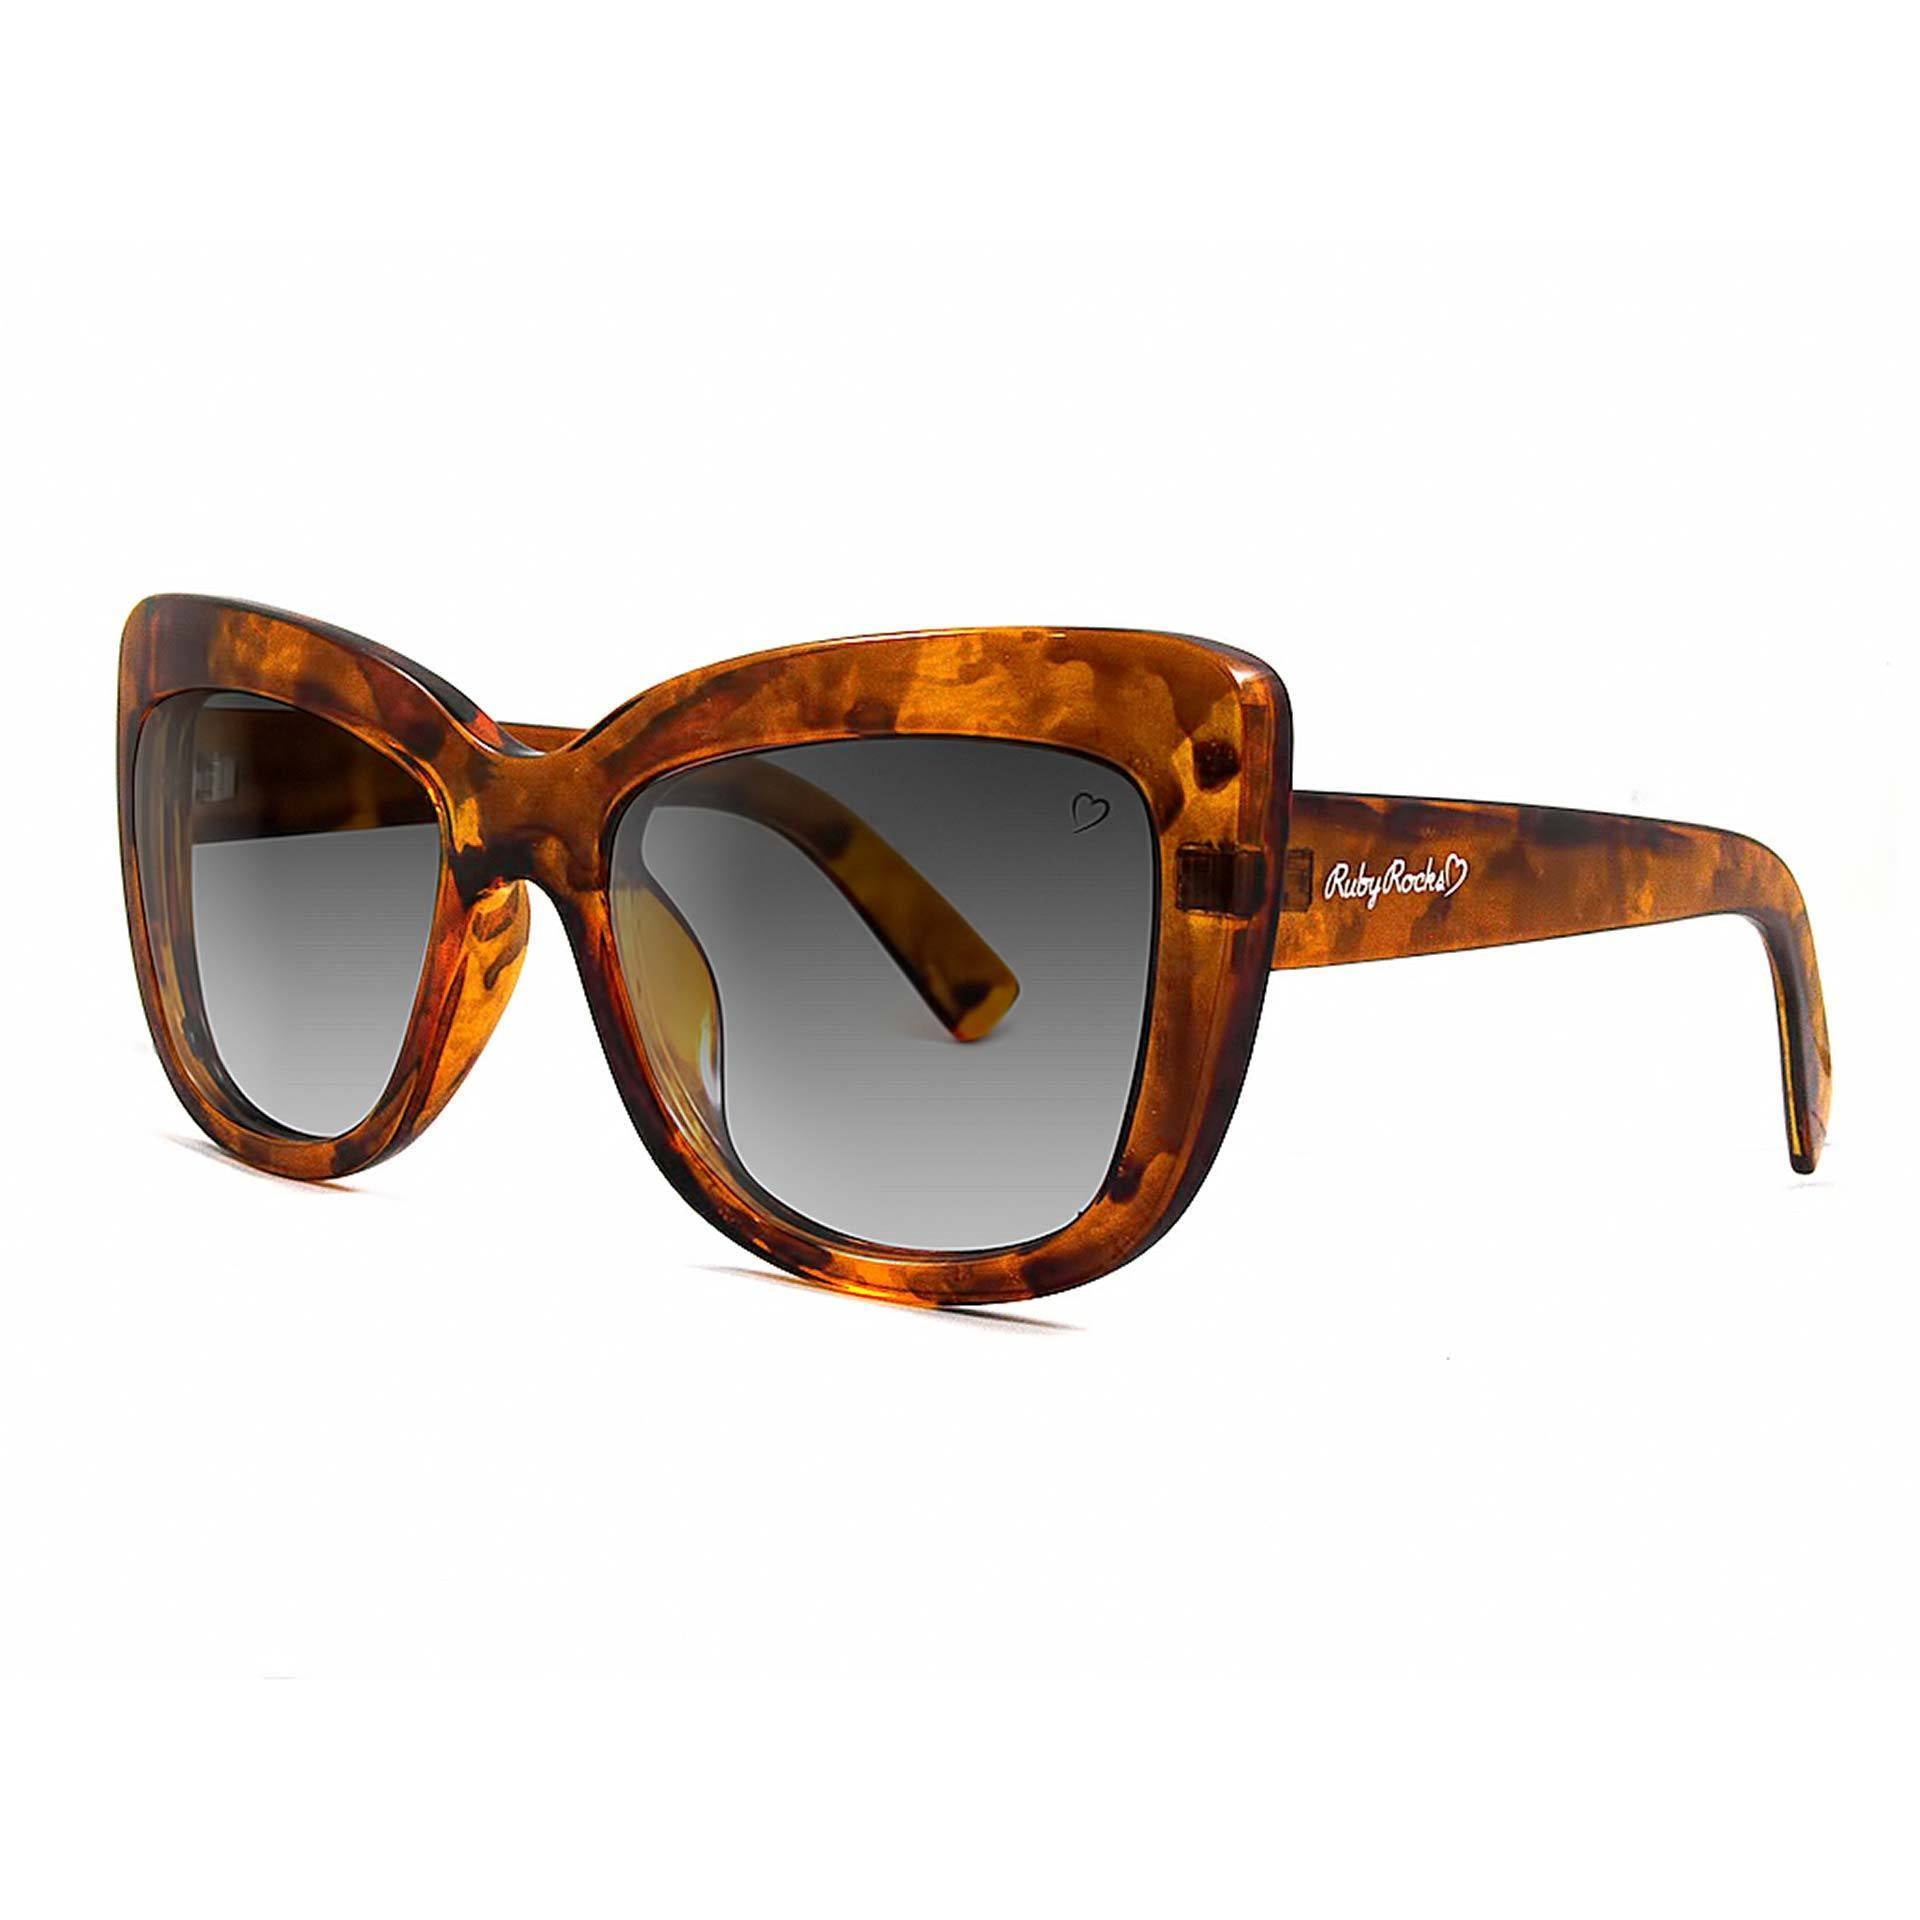 Ruby Rocks Tortoiseshell Cannes Angled Cateye